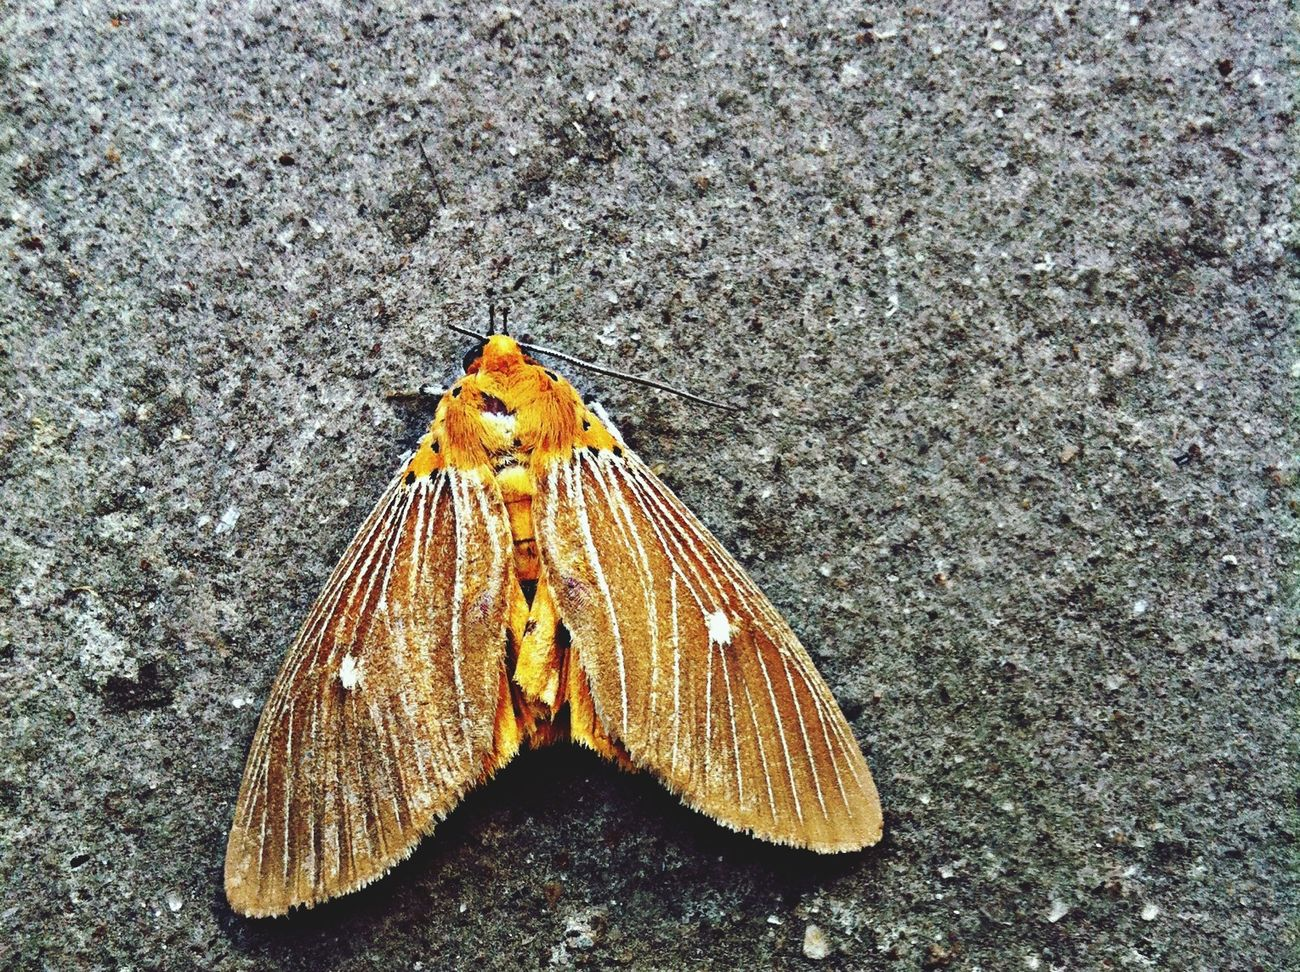 Found this moth already dead, but still a beauty. :(